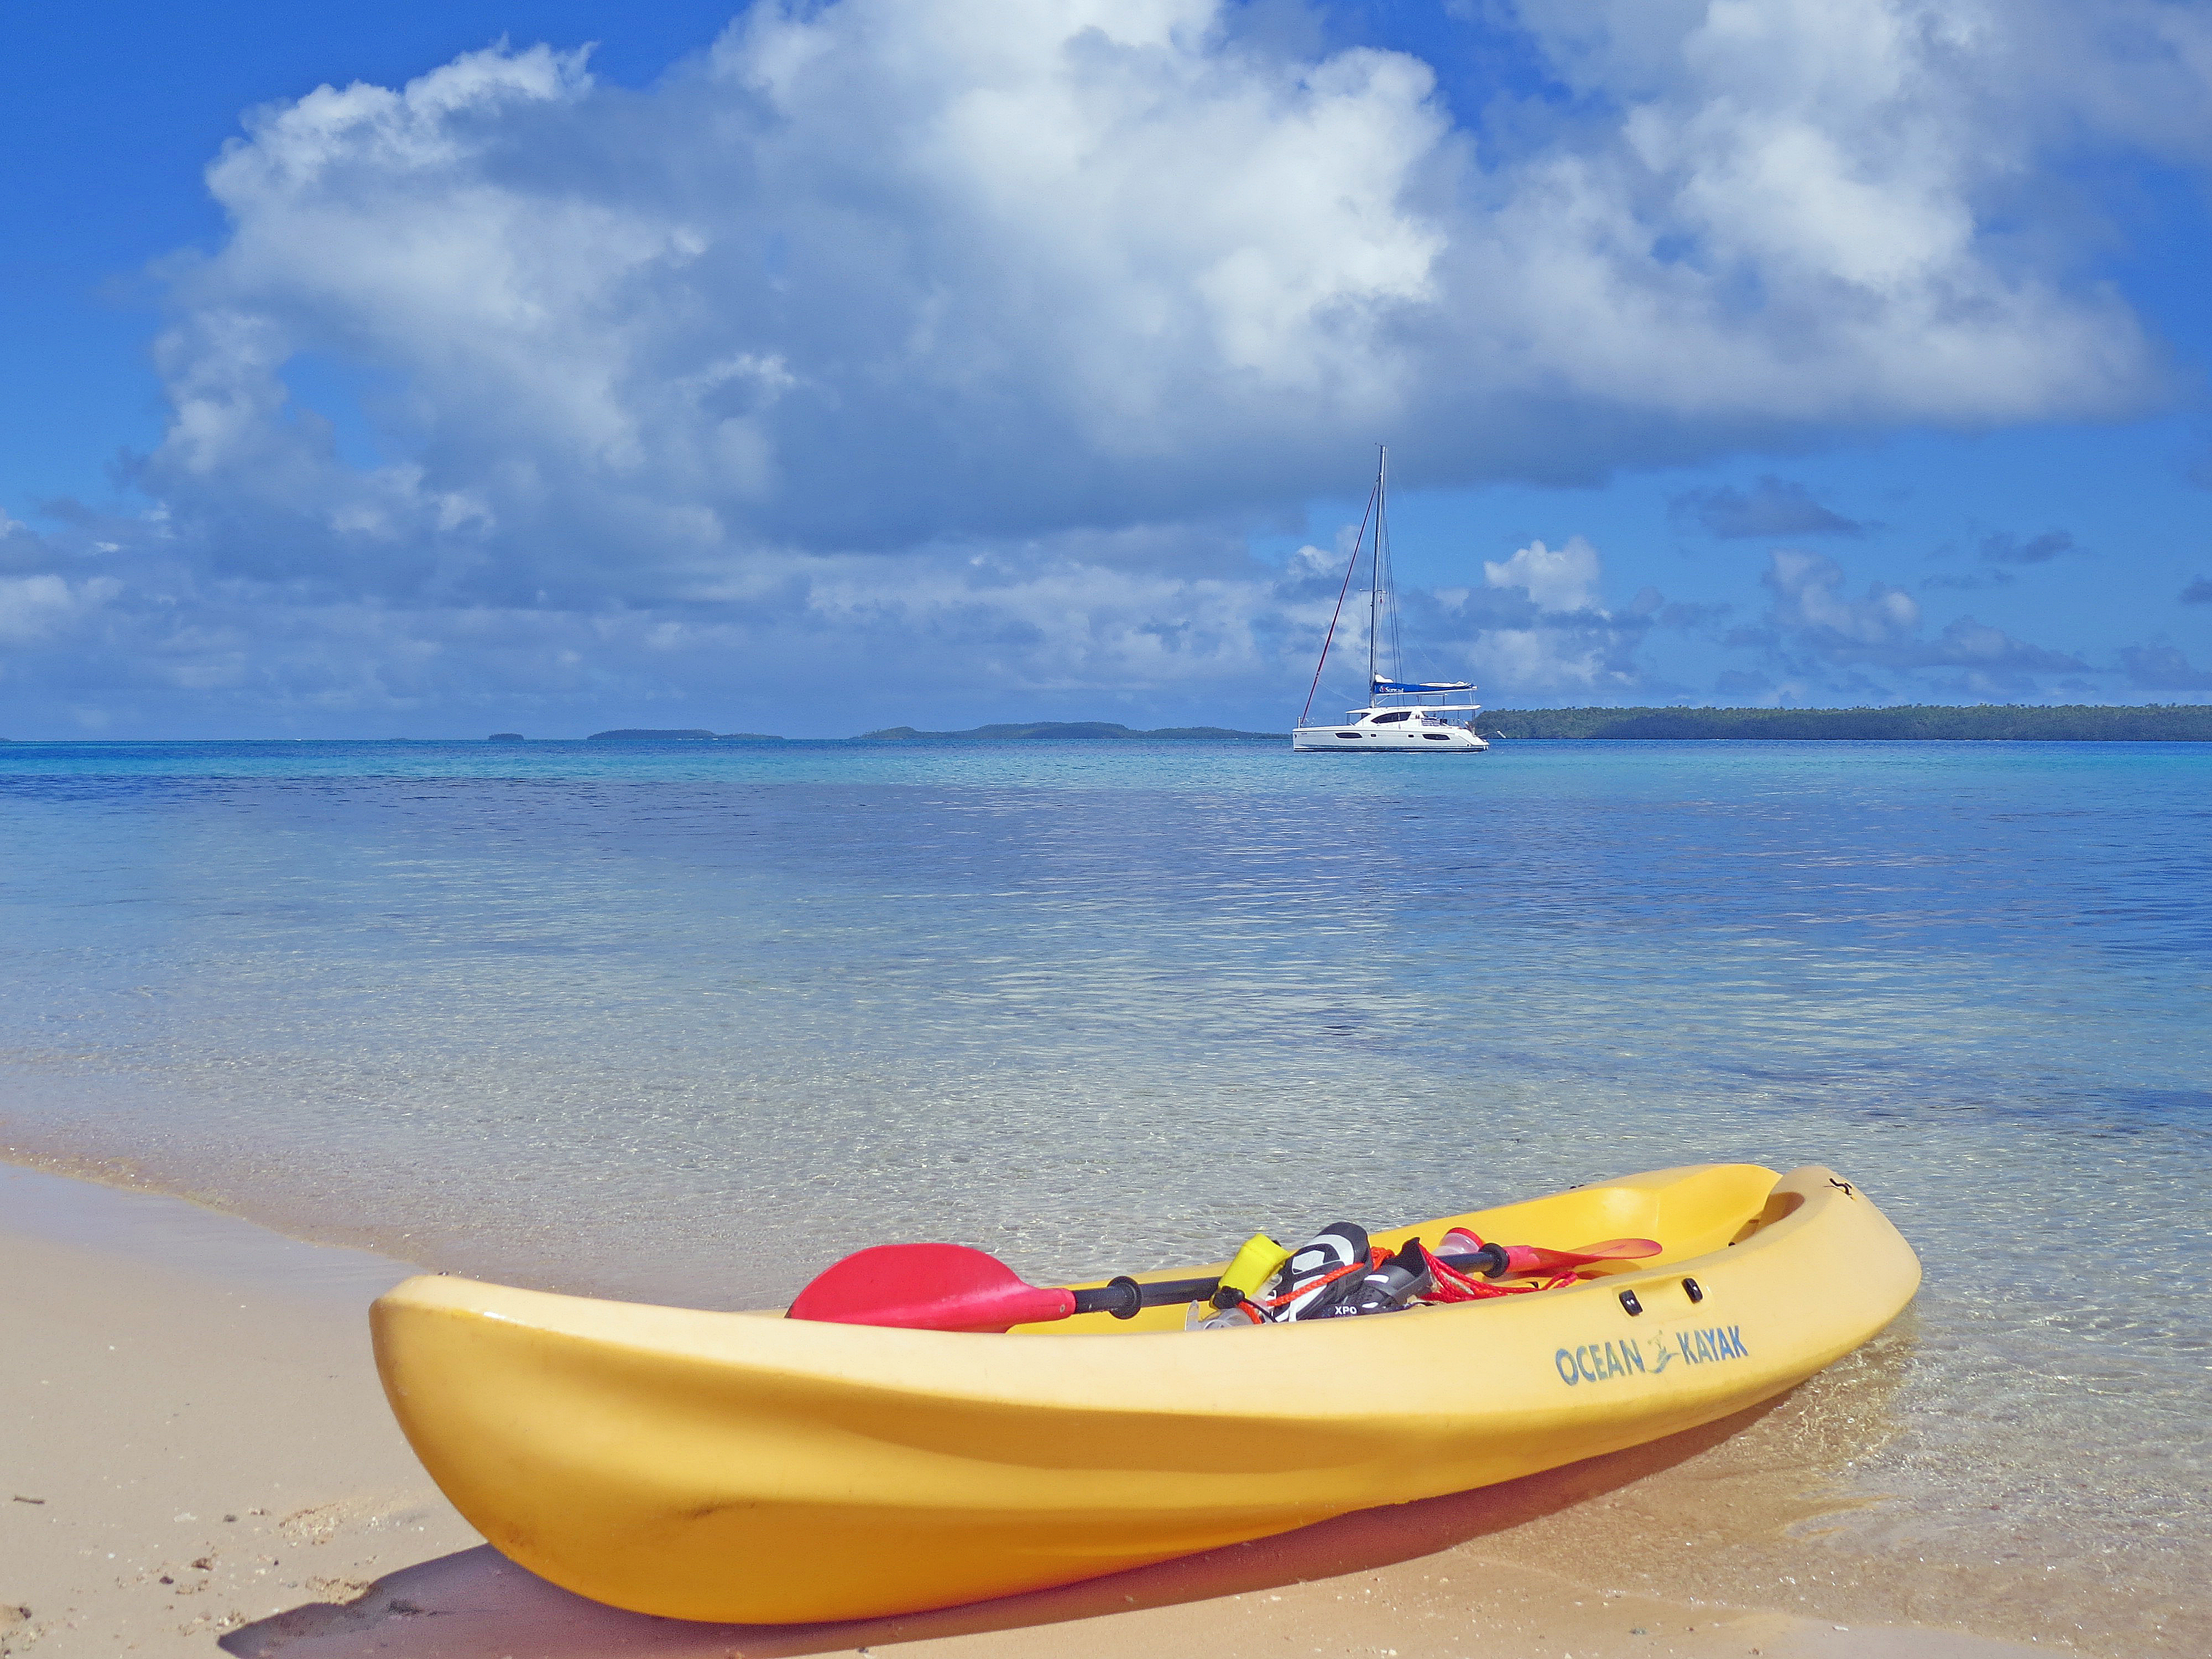 A-kayak-on-the-sandy-beaches-of-Kenutu-island